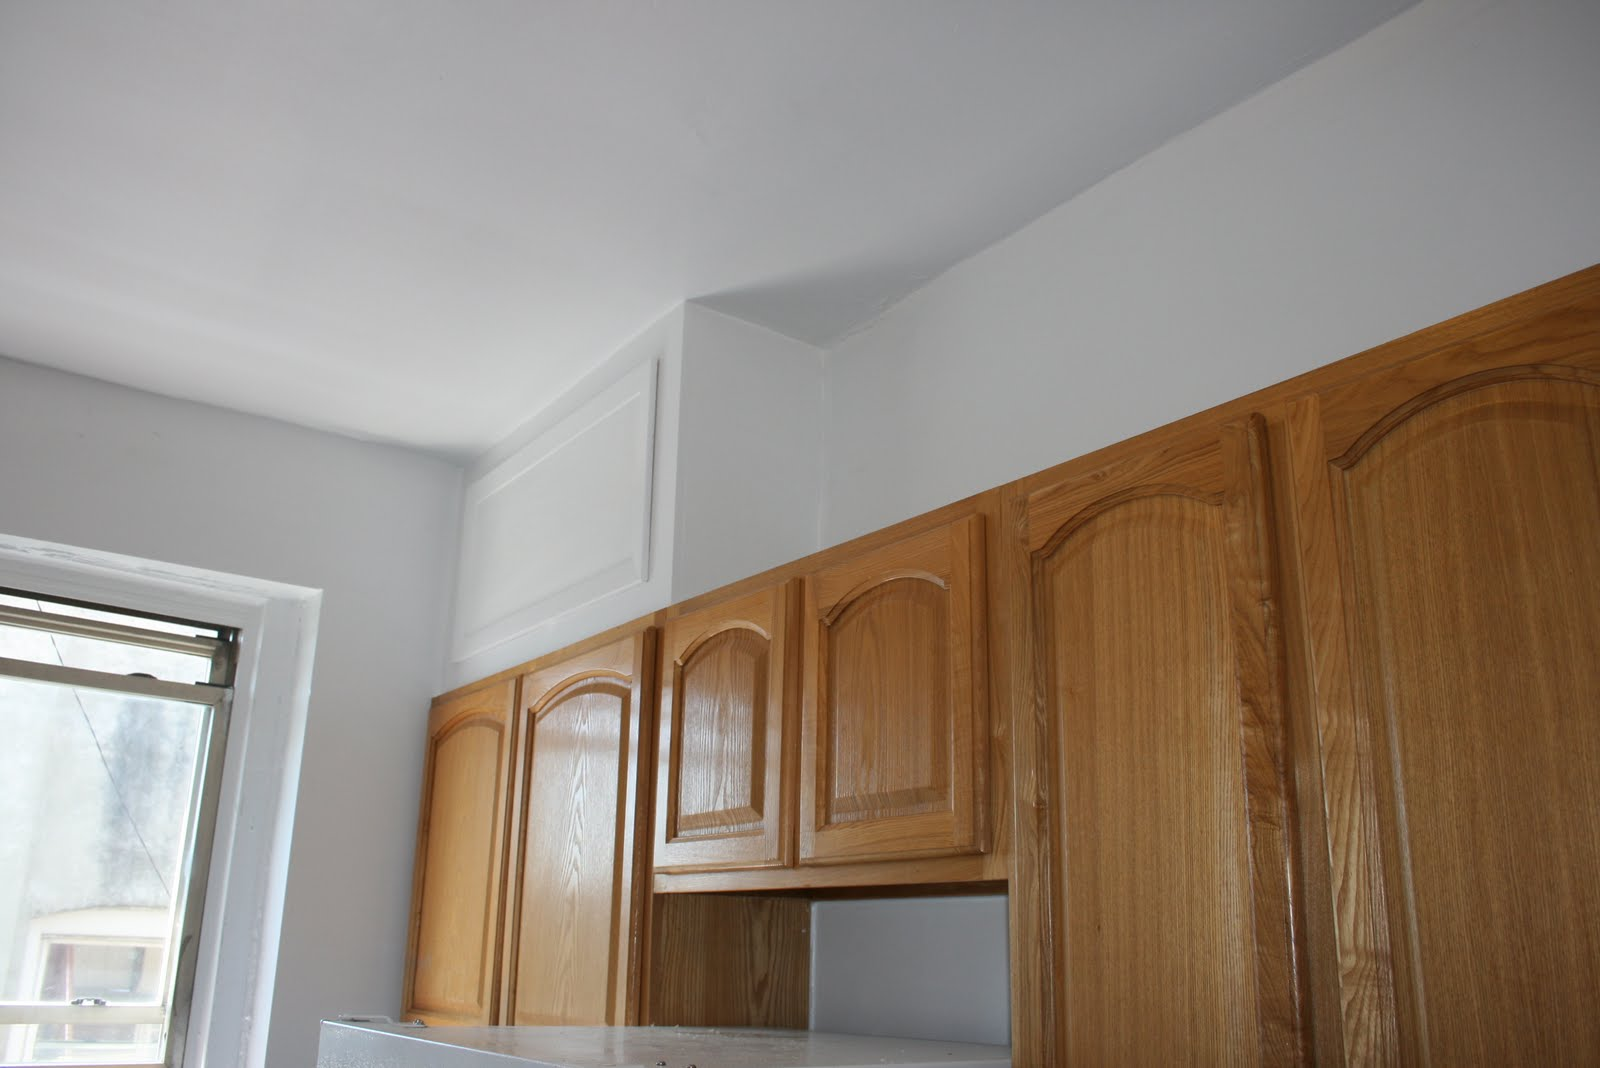 Kitchen designs cabinets to cover kitchen pipes.